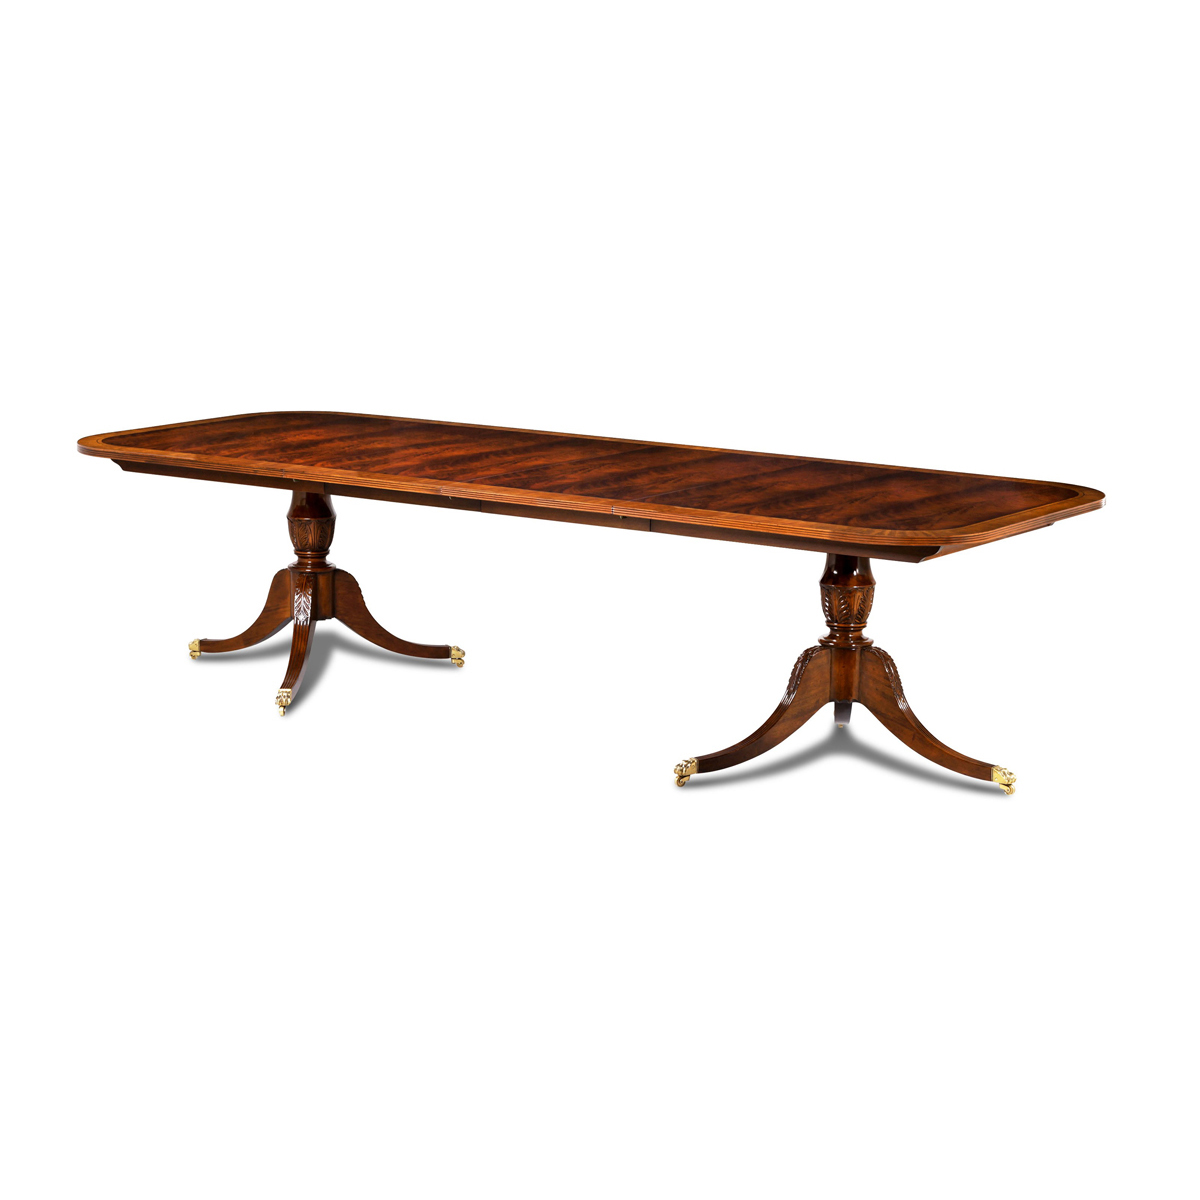 mahogany dining table 5456 stock number 25002 categories tables dining